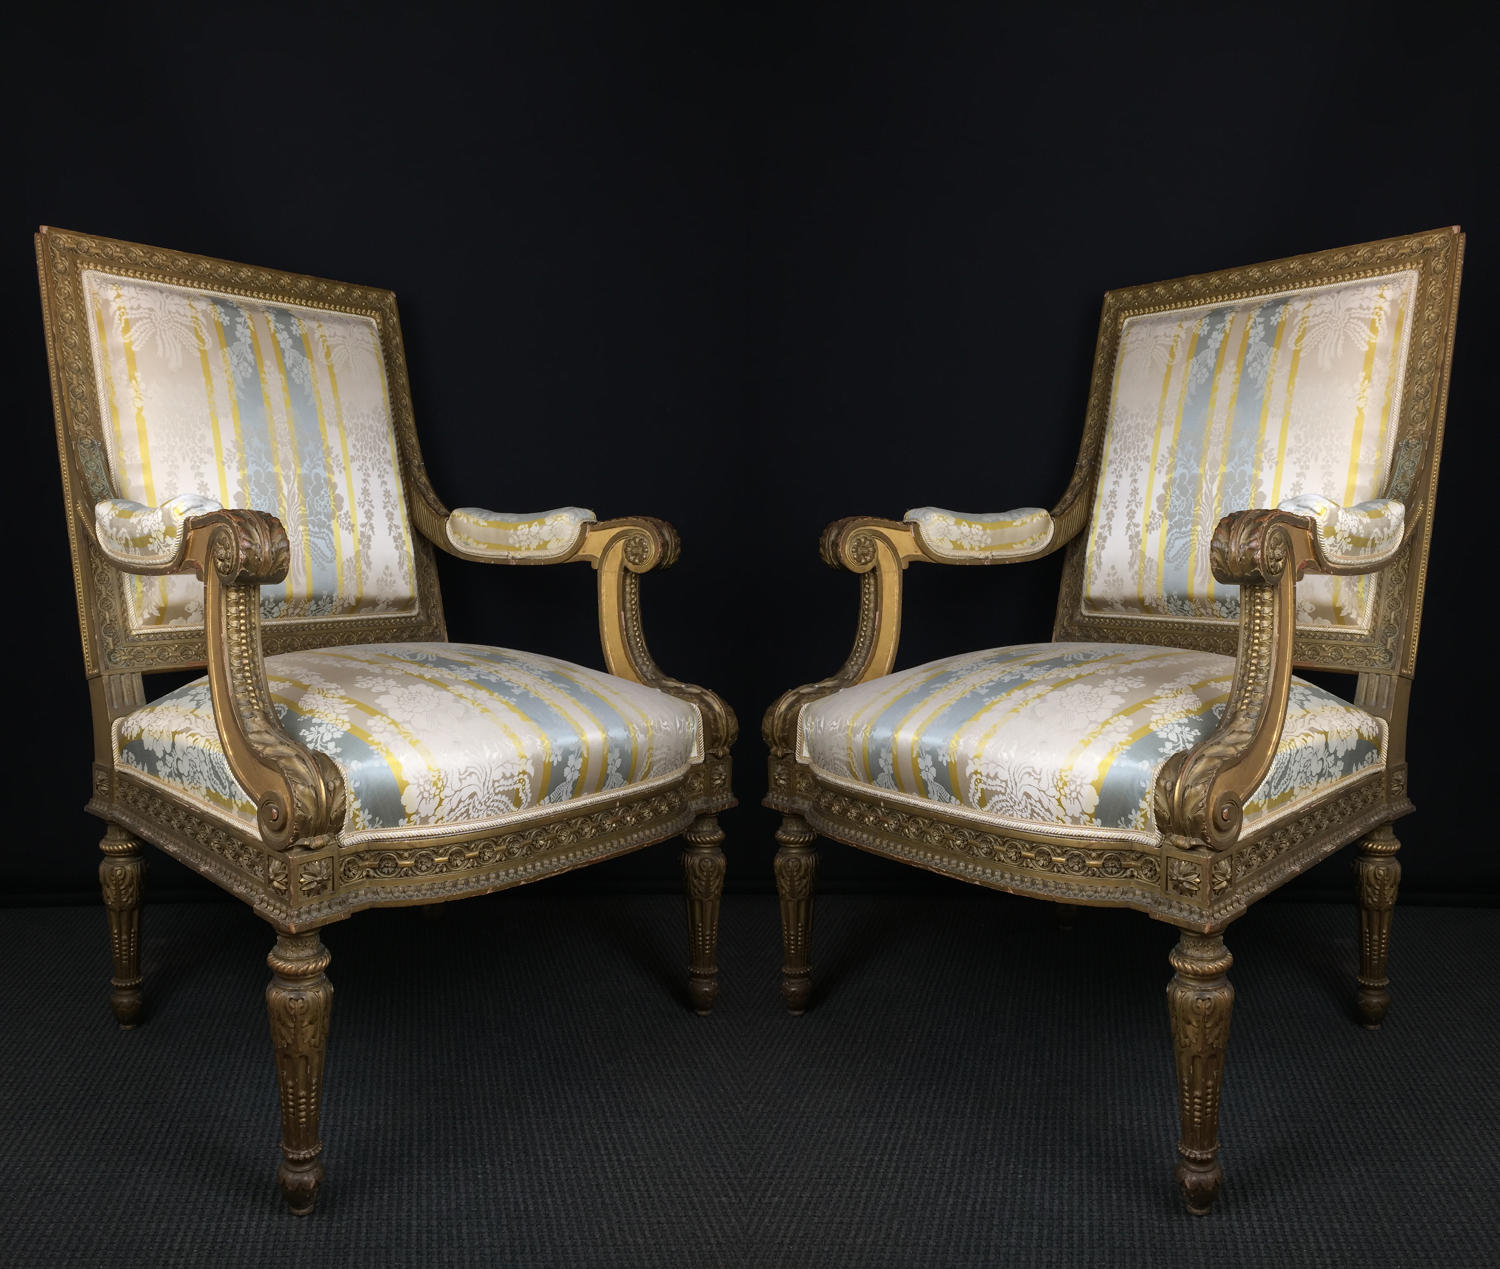 A set of Four Gilded Louis IX Style Armchairs